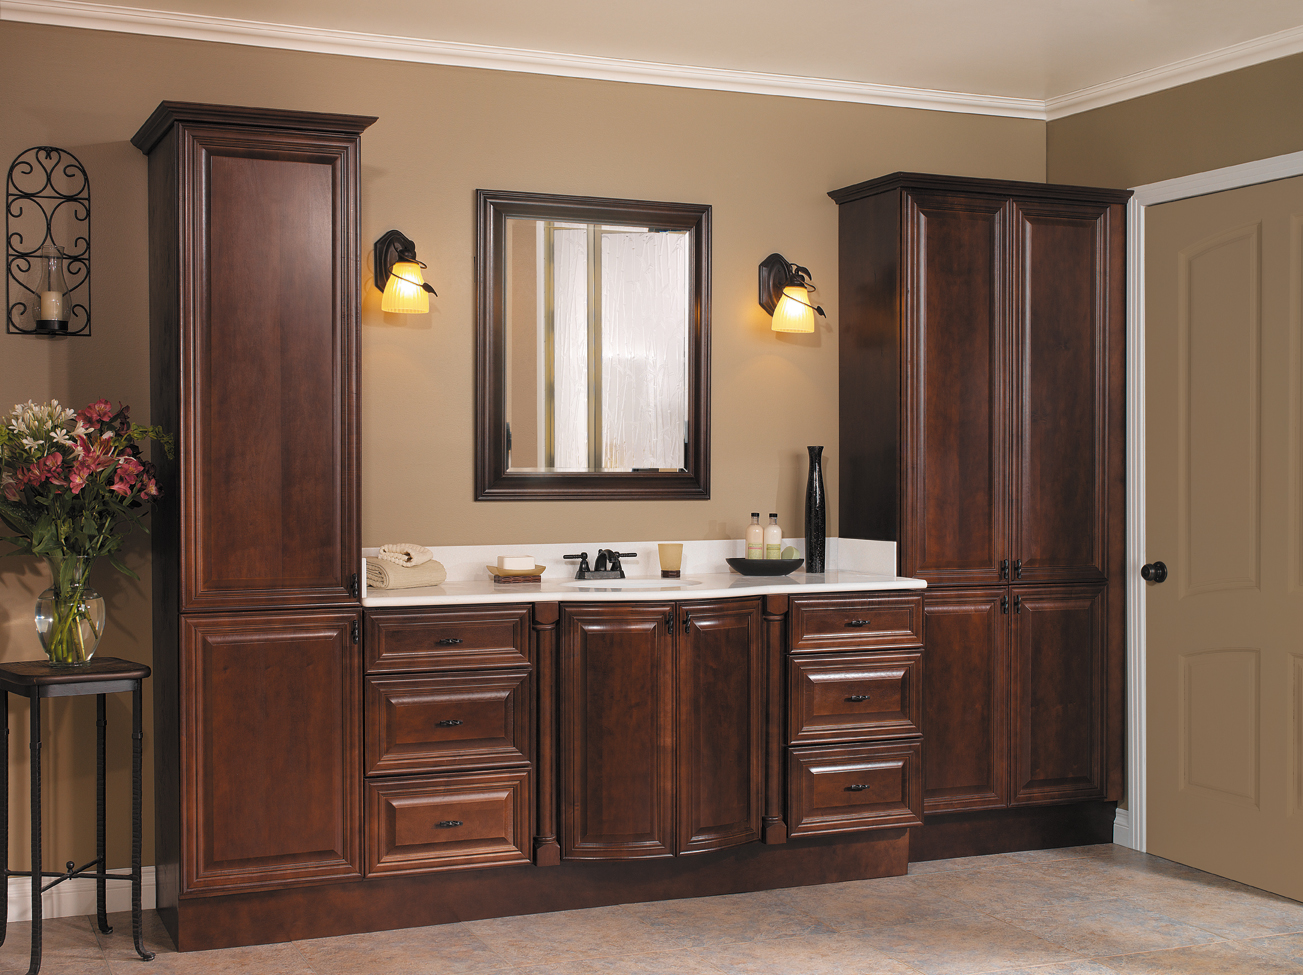 Top tips for buying bathroom cabinets aw bathroom for Bathroom cabinets 2015